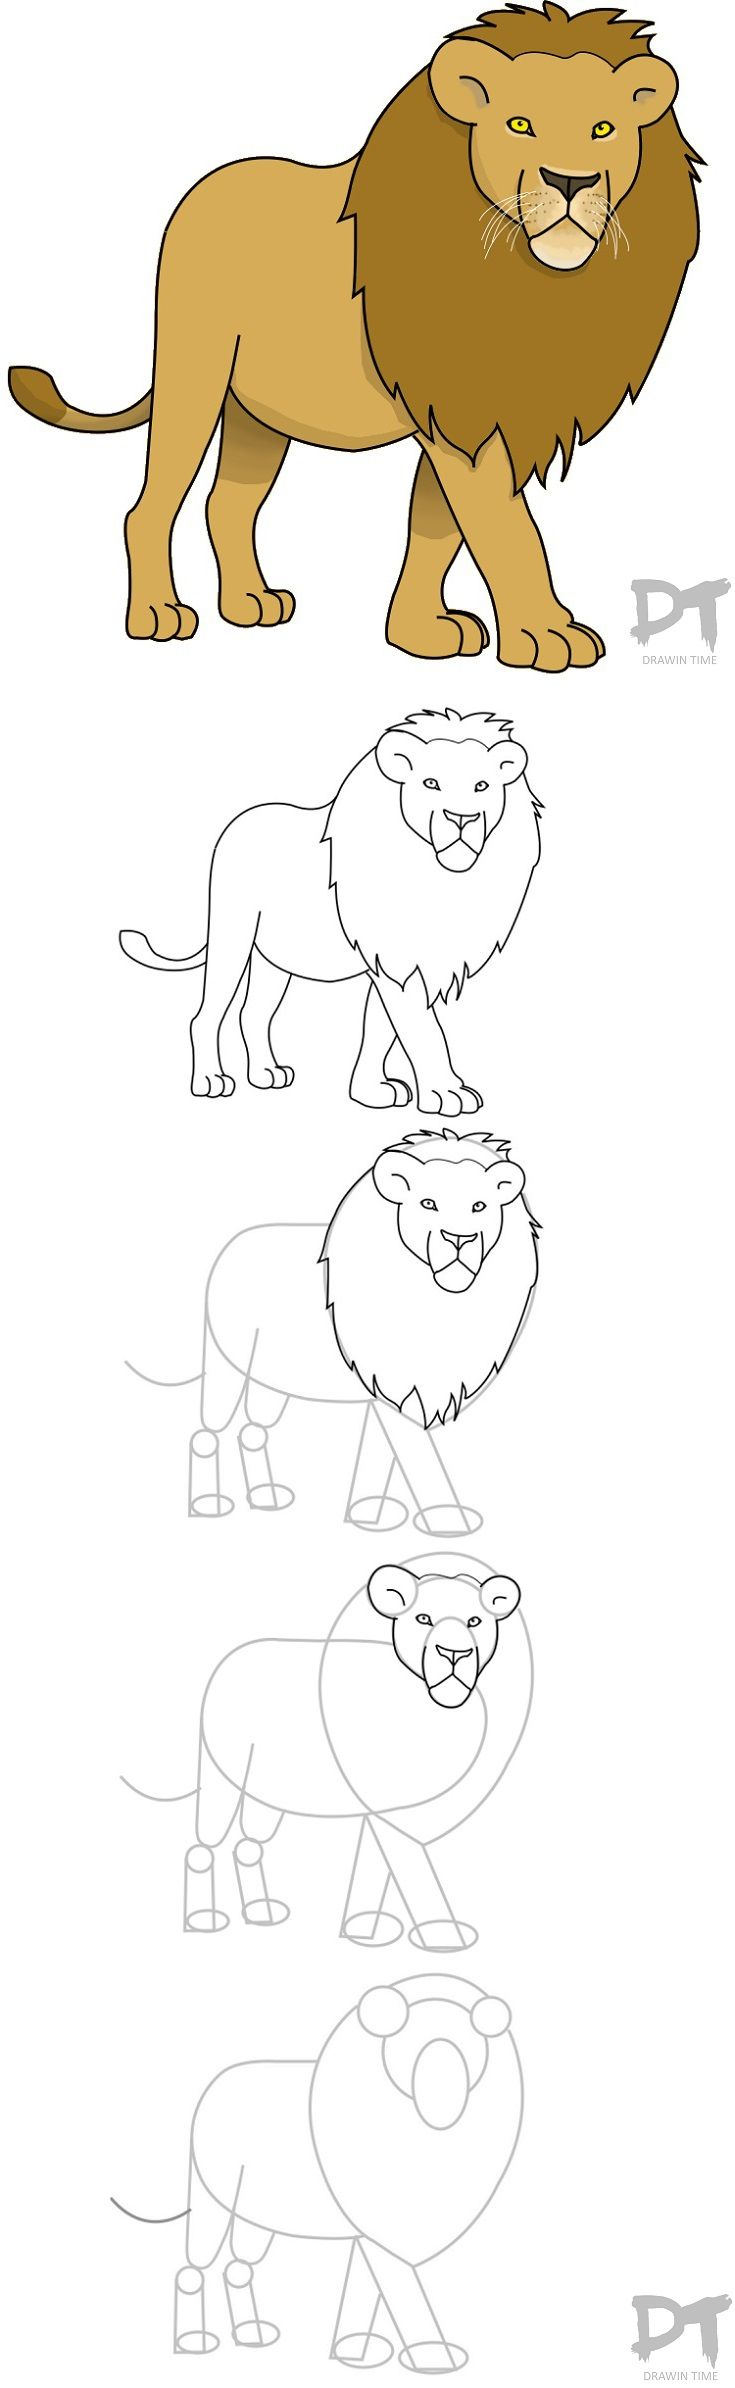 735x2388 How To Draw A Cartoon Lion Step By Step. Drawing Tutorials